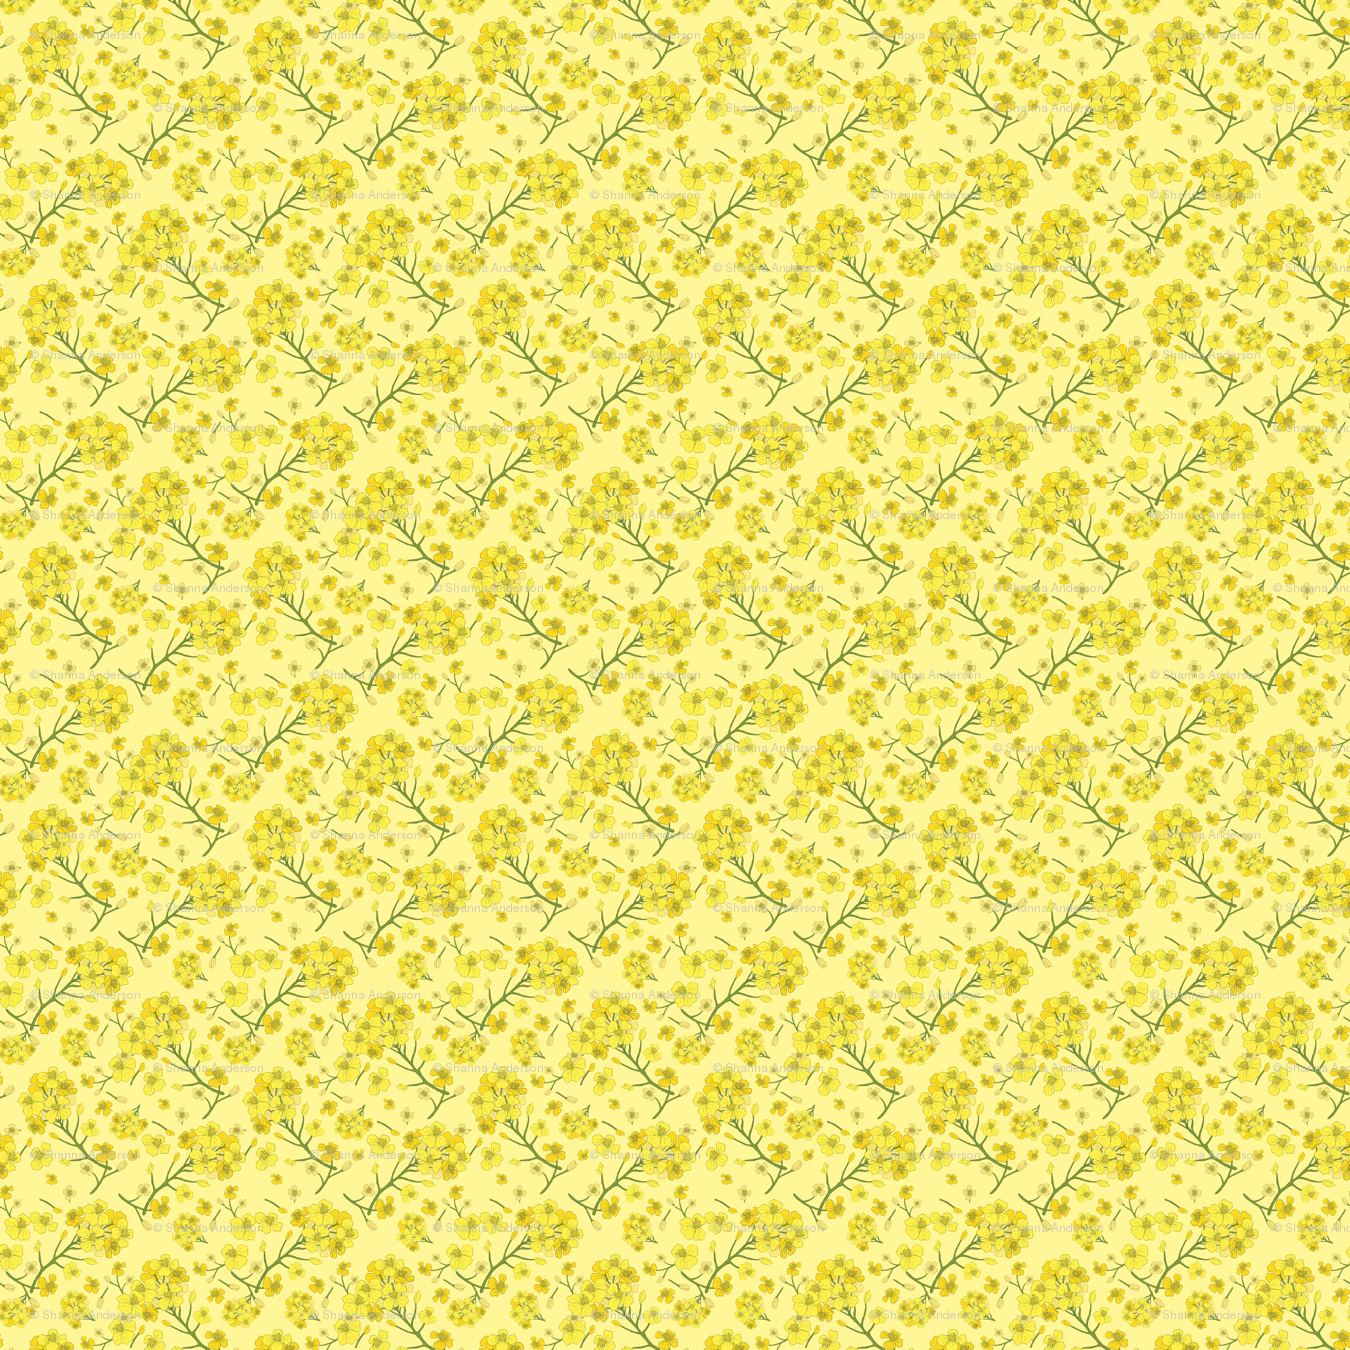 82758ab3fb4 Floral Love of Mustard in Yellow wallpaper - bristol and breve - Spoonflower